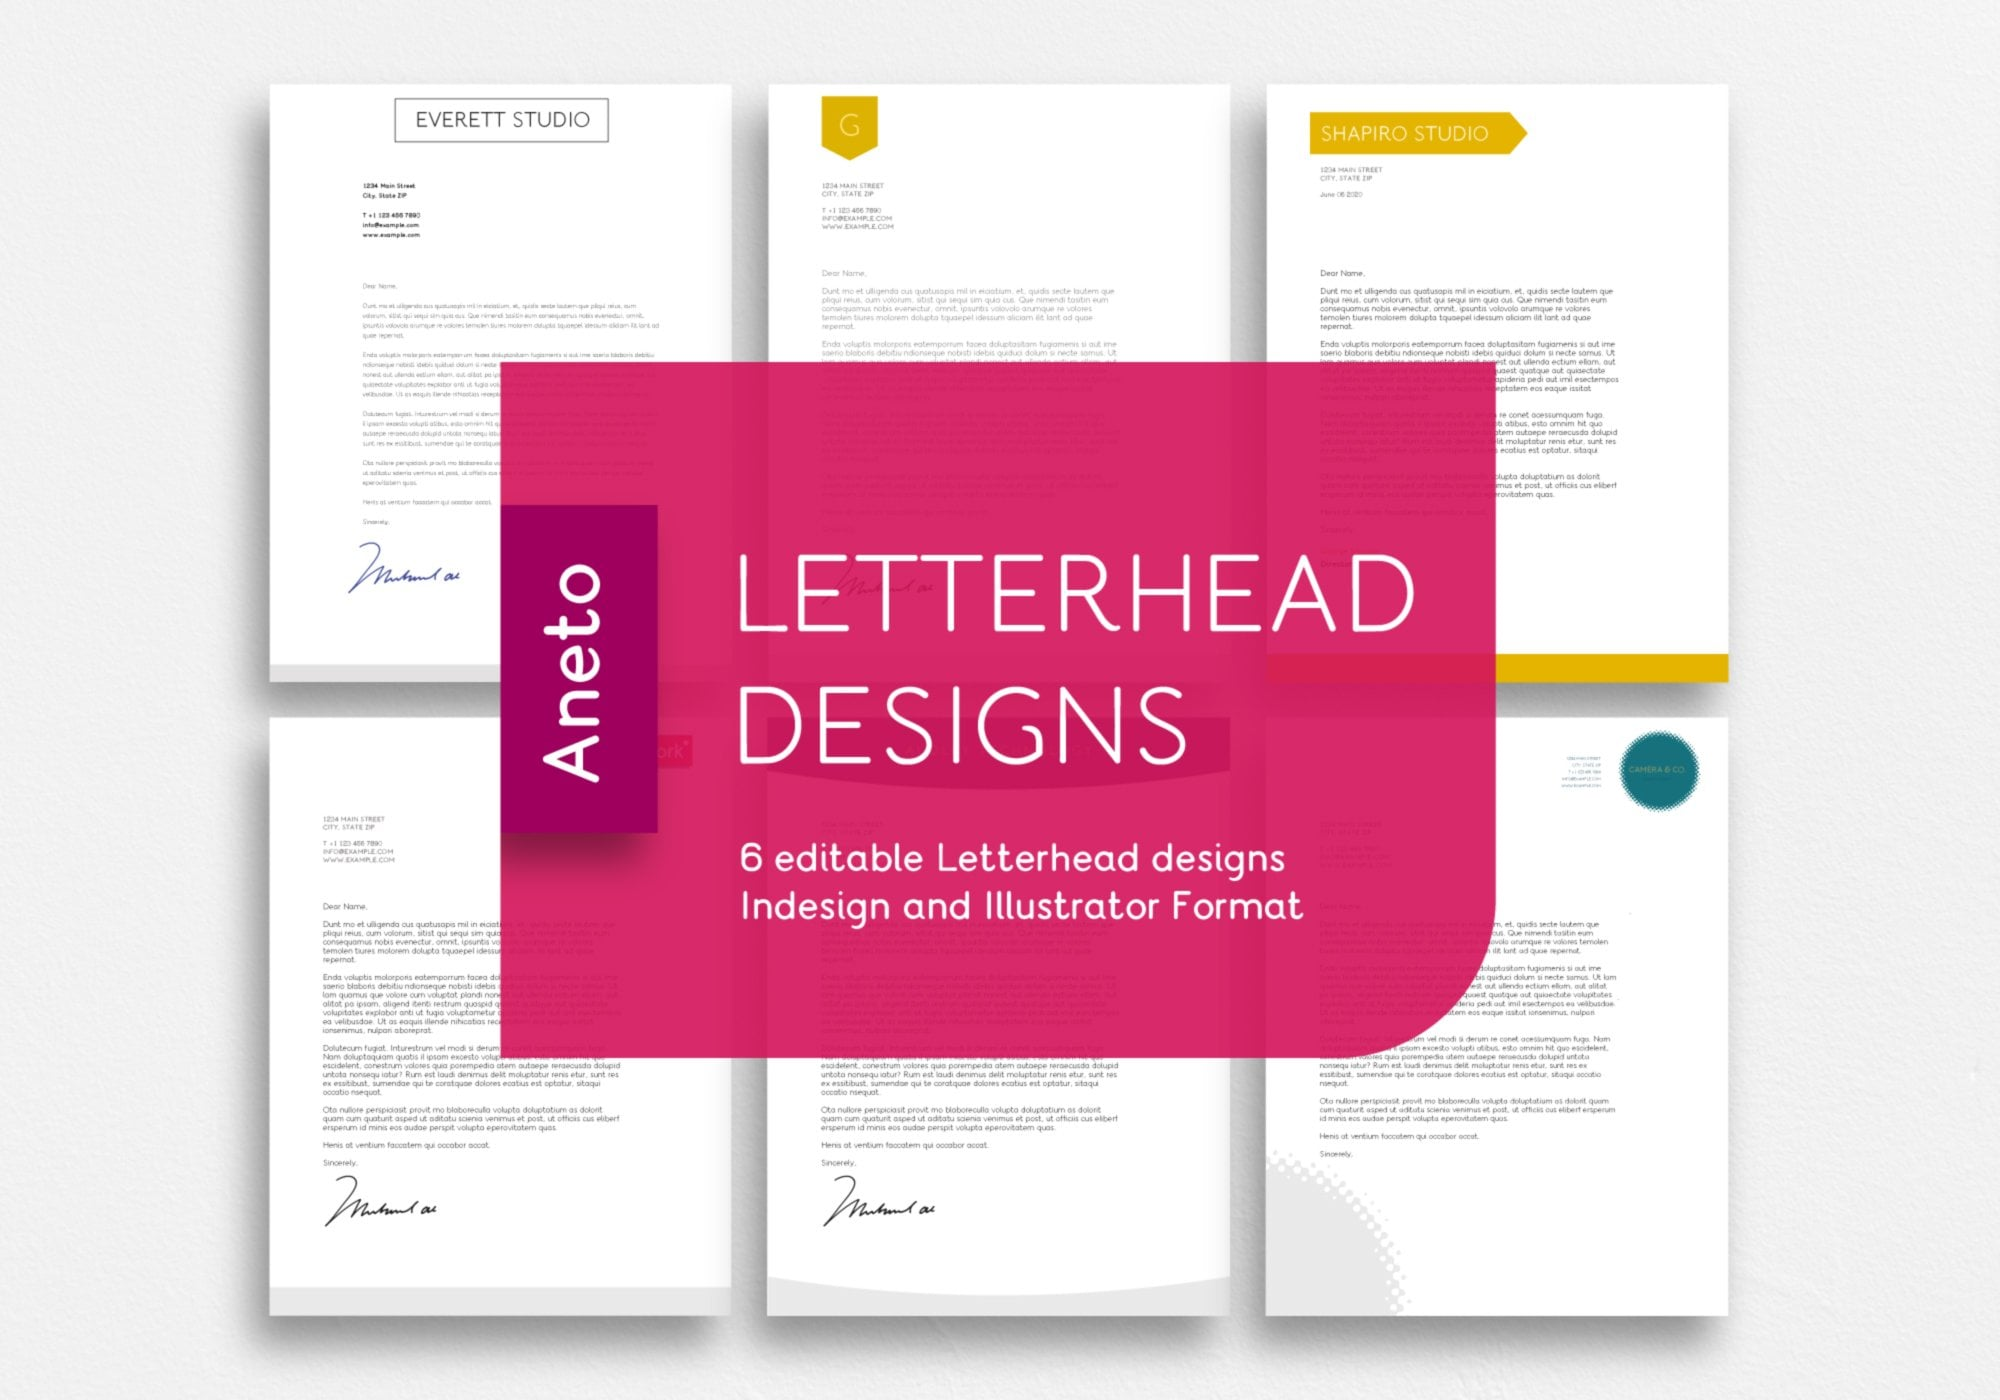 Editable Letterhead designs using aneto font